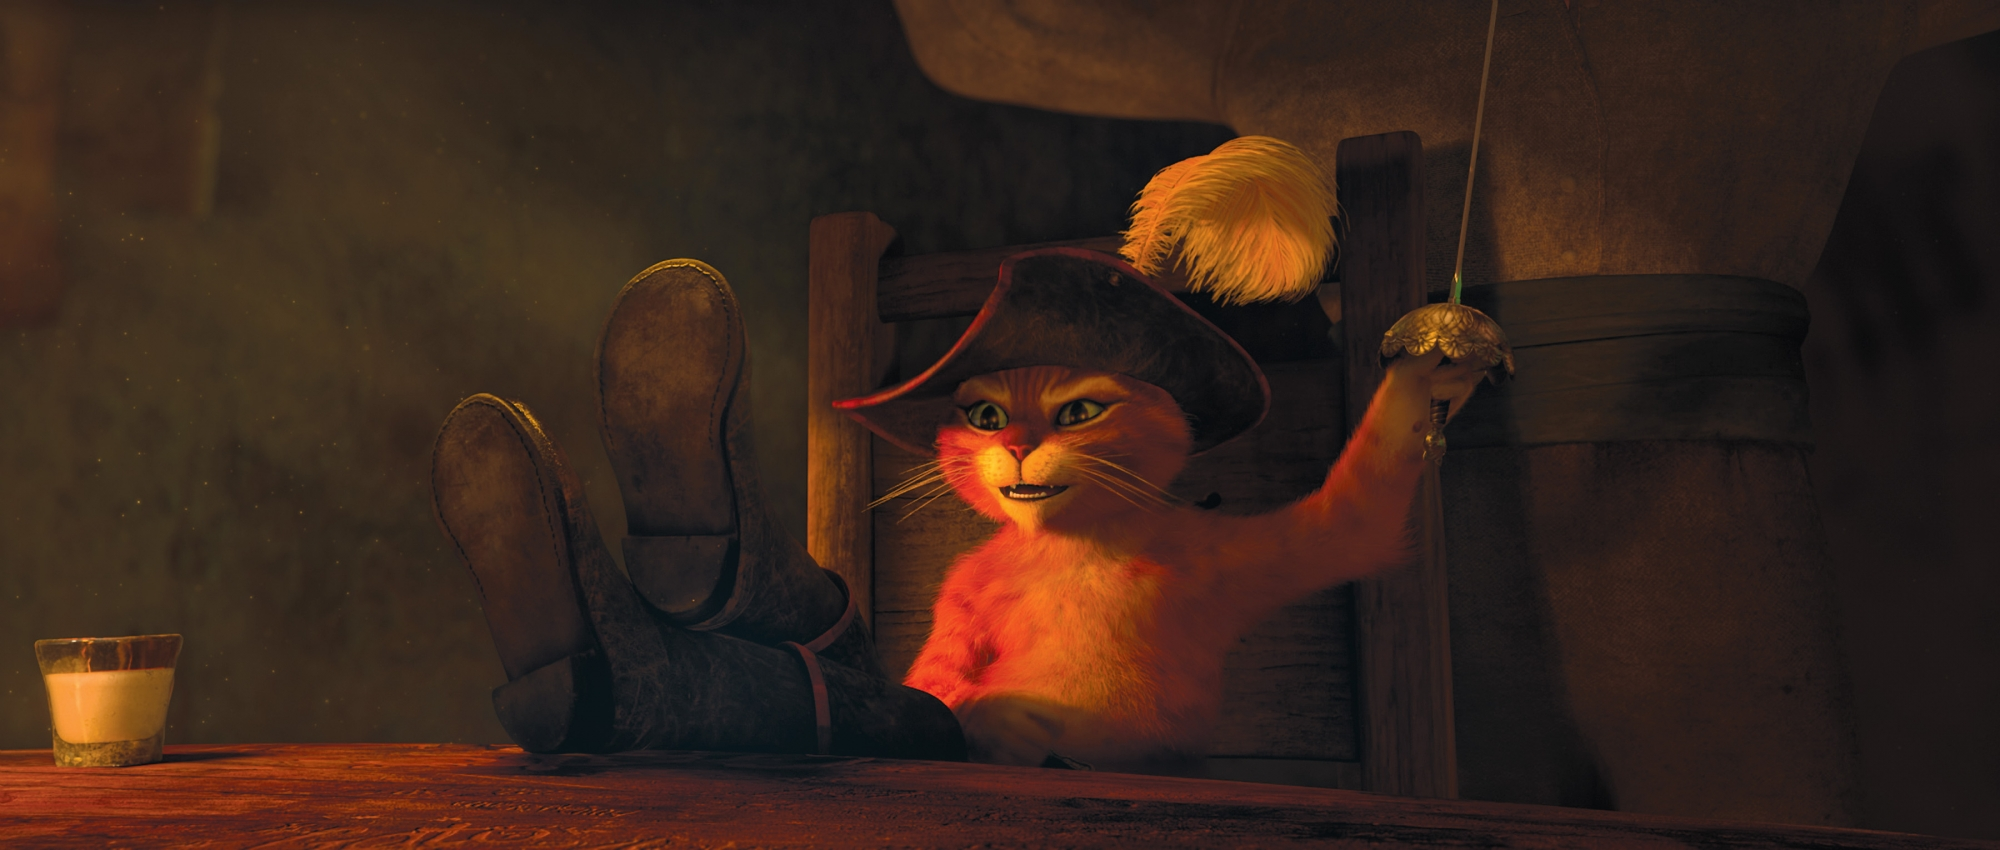 Shrek 5 Delayed for Puss in Boots Sequel